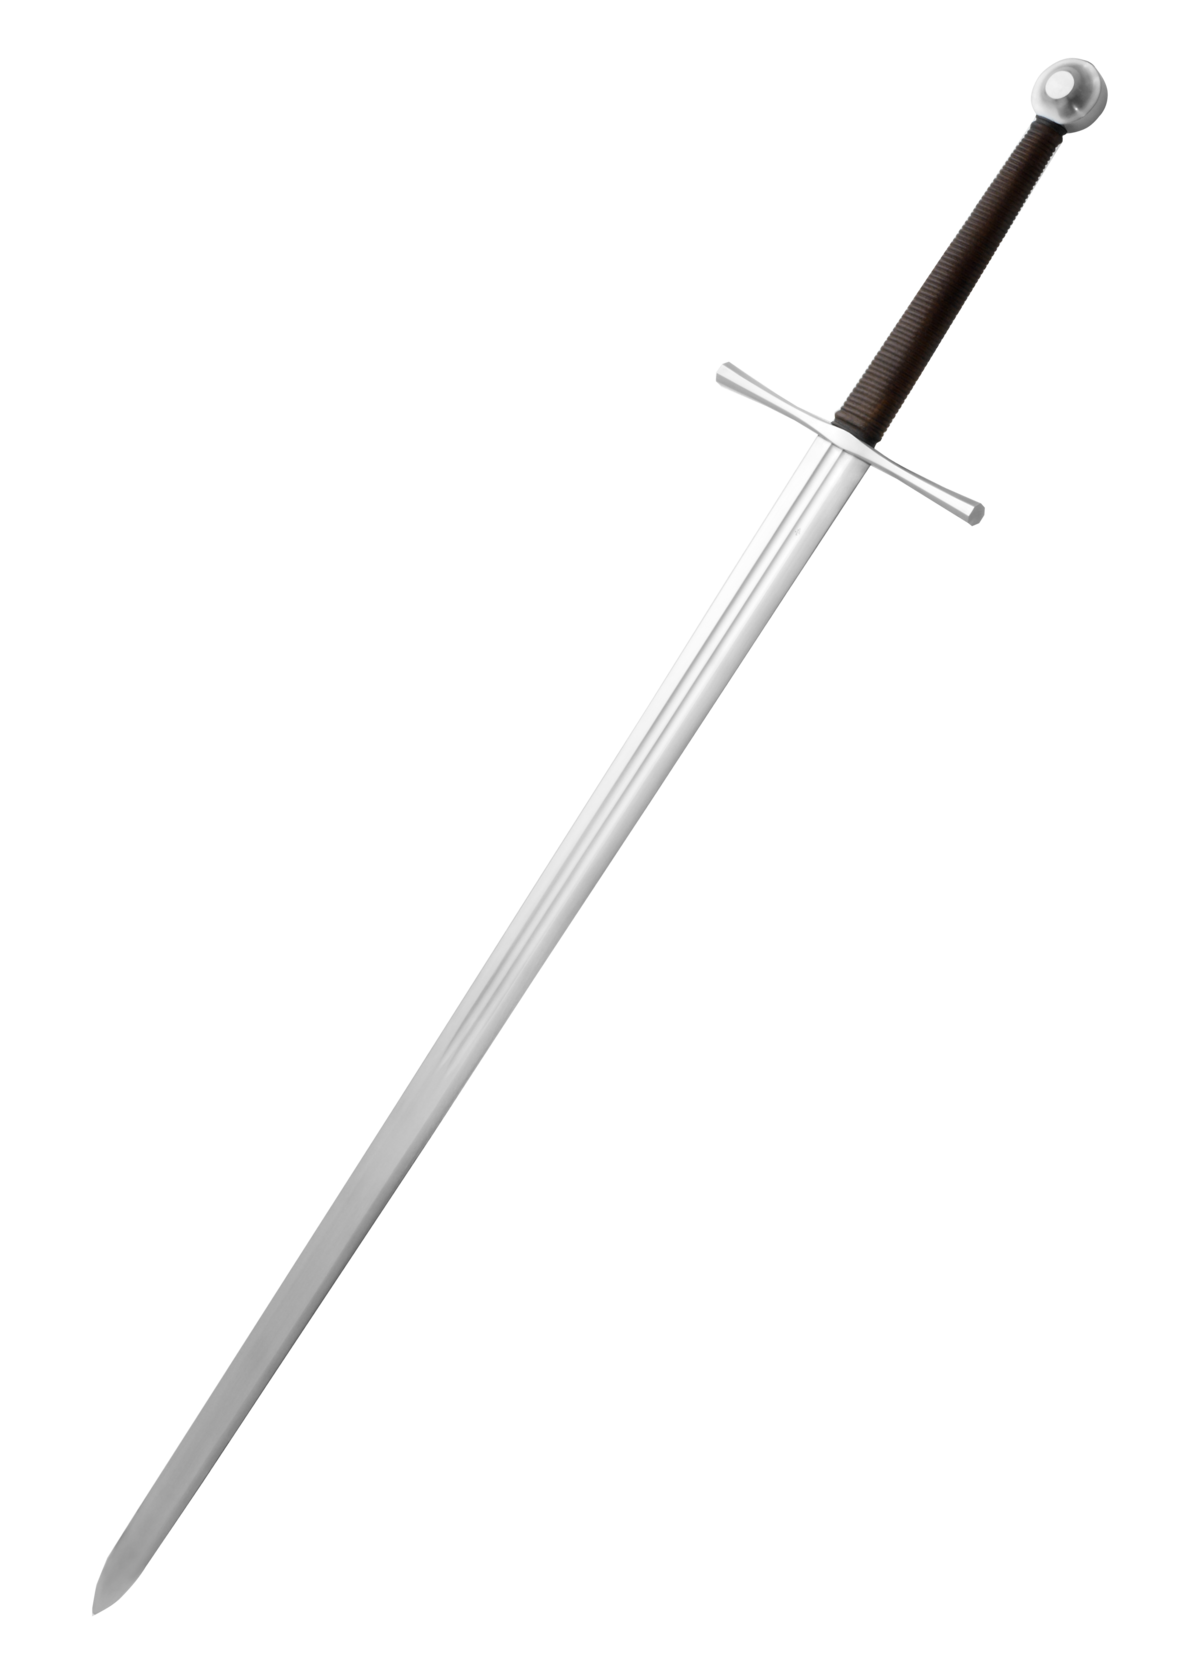 Weapon drawing great sword. Classification of swords wikipedia